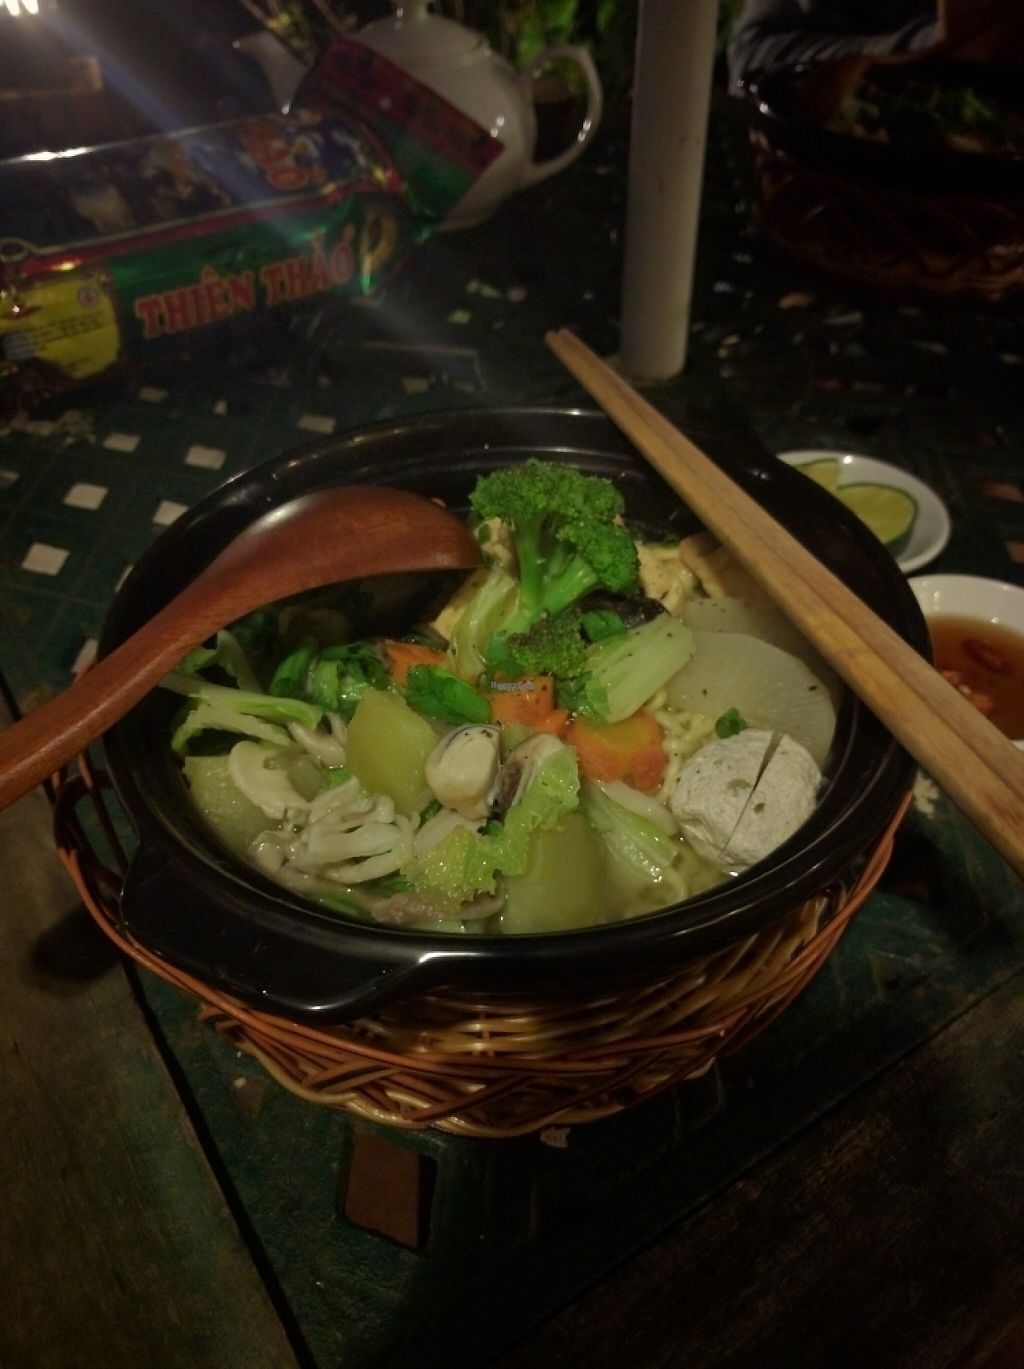 """Photo of Vegan Villa  by <a href=""""/members/profile/TeddyCourage"""">TeddyCourage</a> <br/>a delicious meal prepared by Thanh's sister <br/> November 15, 2016  - <a href='/contact/abuse/image/82353/190245'>Report</a>"""